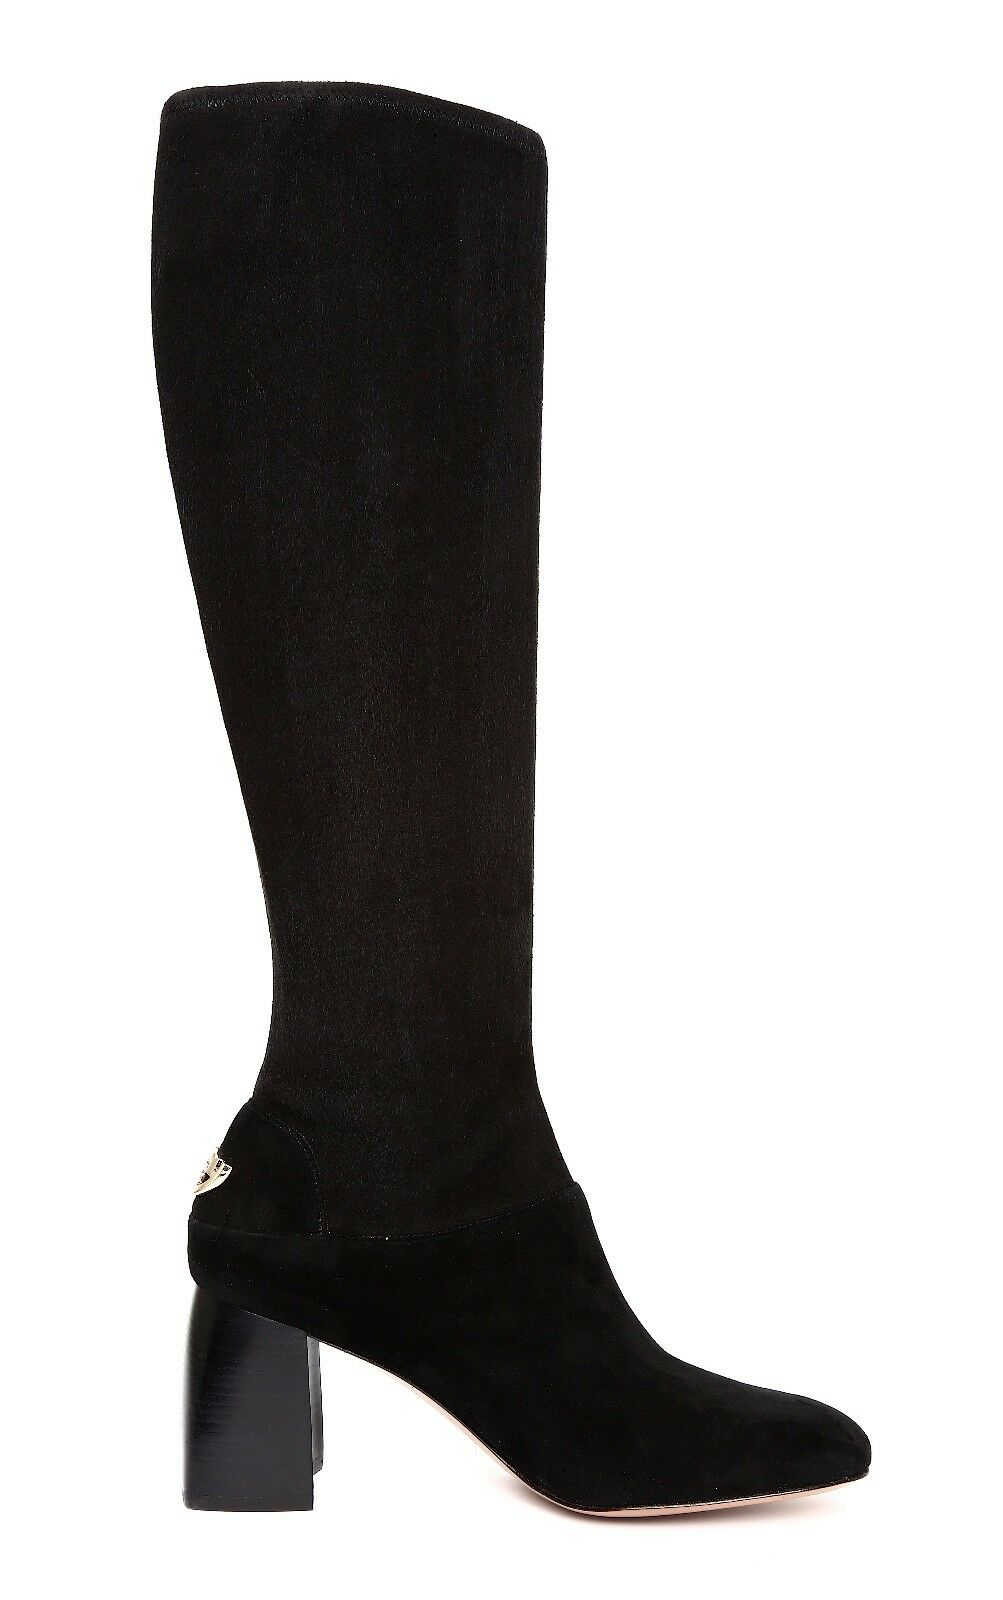 7ccd81a898b3 Tory Burch Sidney 70mm BOOTS Black Stretch Suede Size 9 for sale online